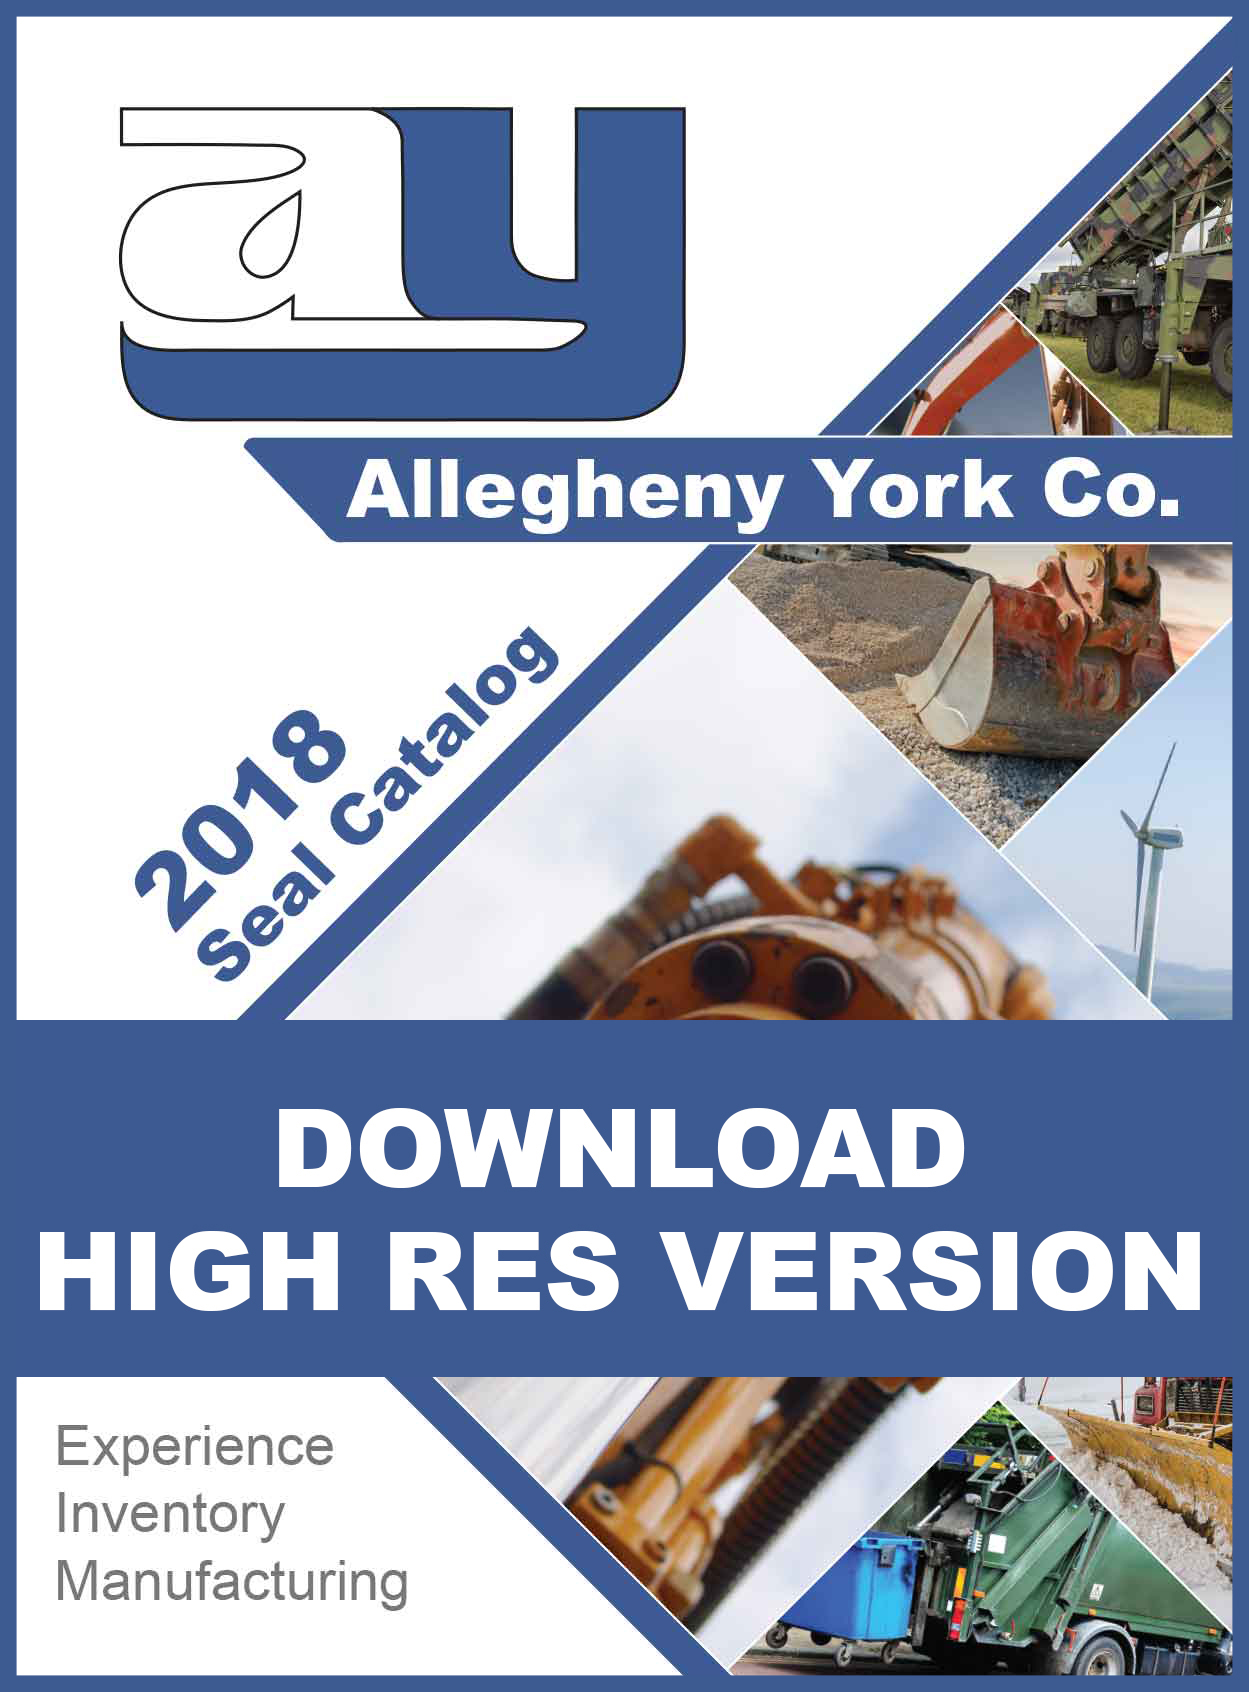 Allegheny York 2018 Catalog High Res